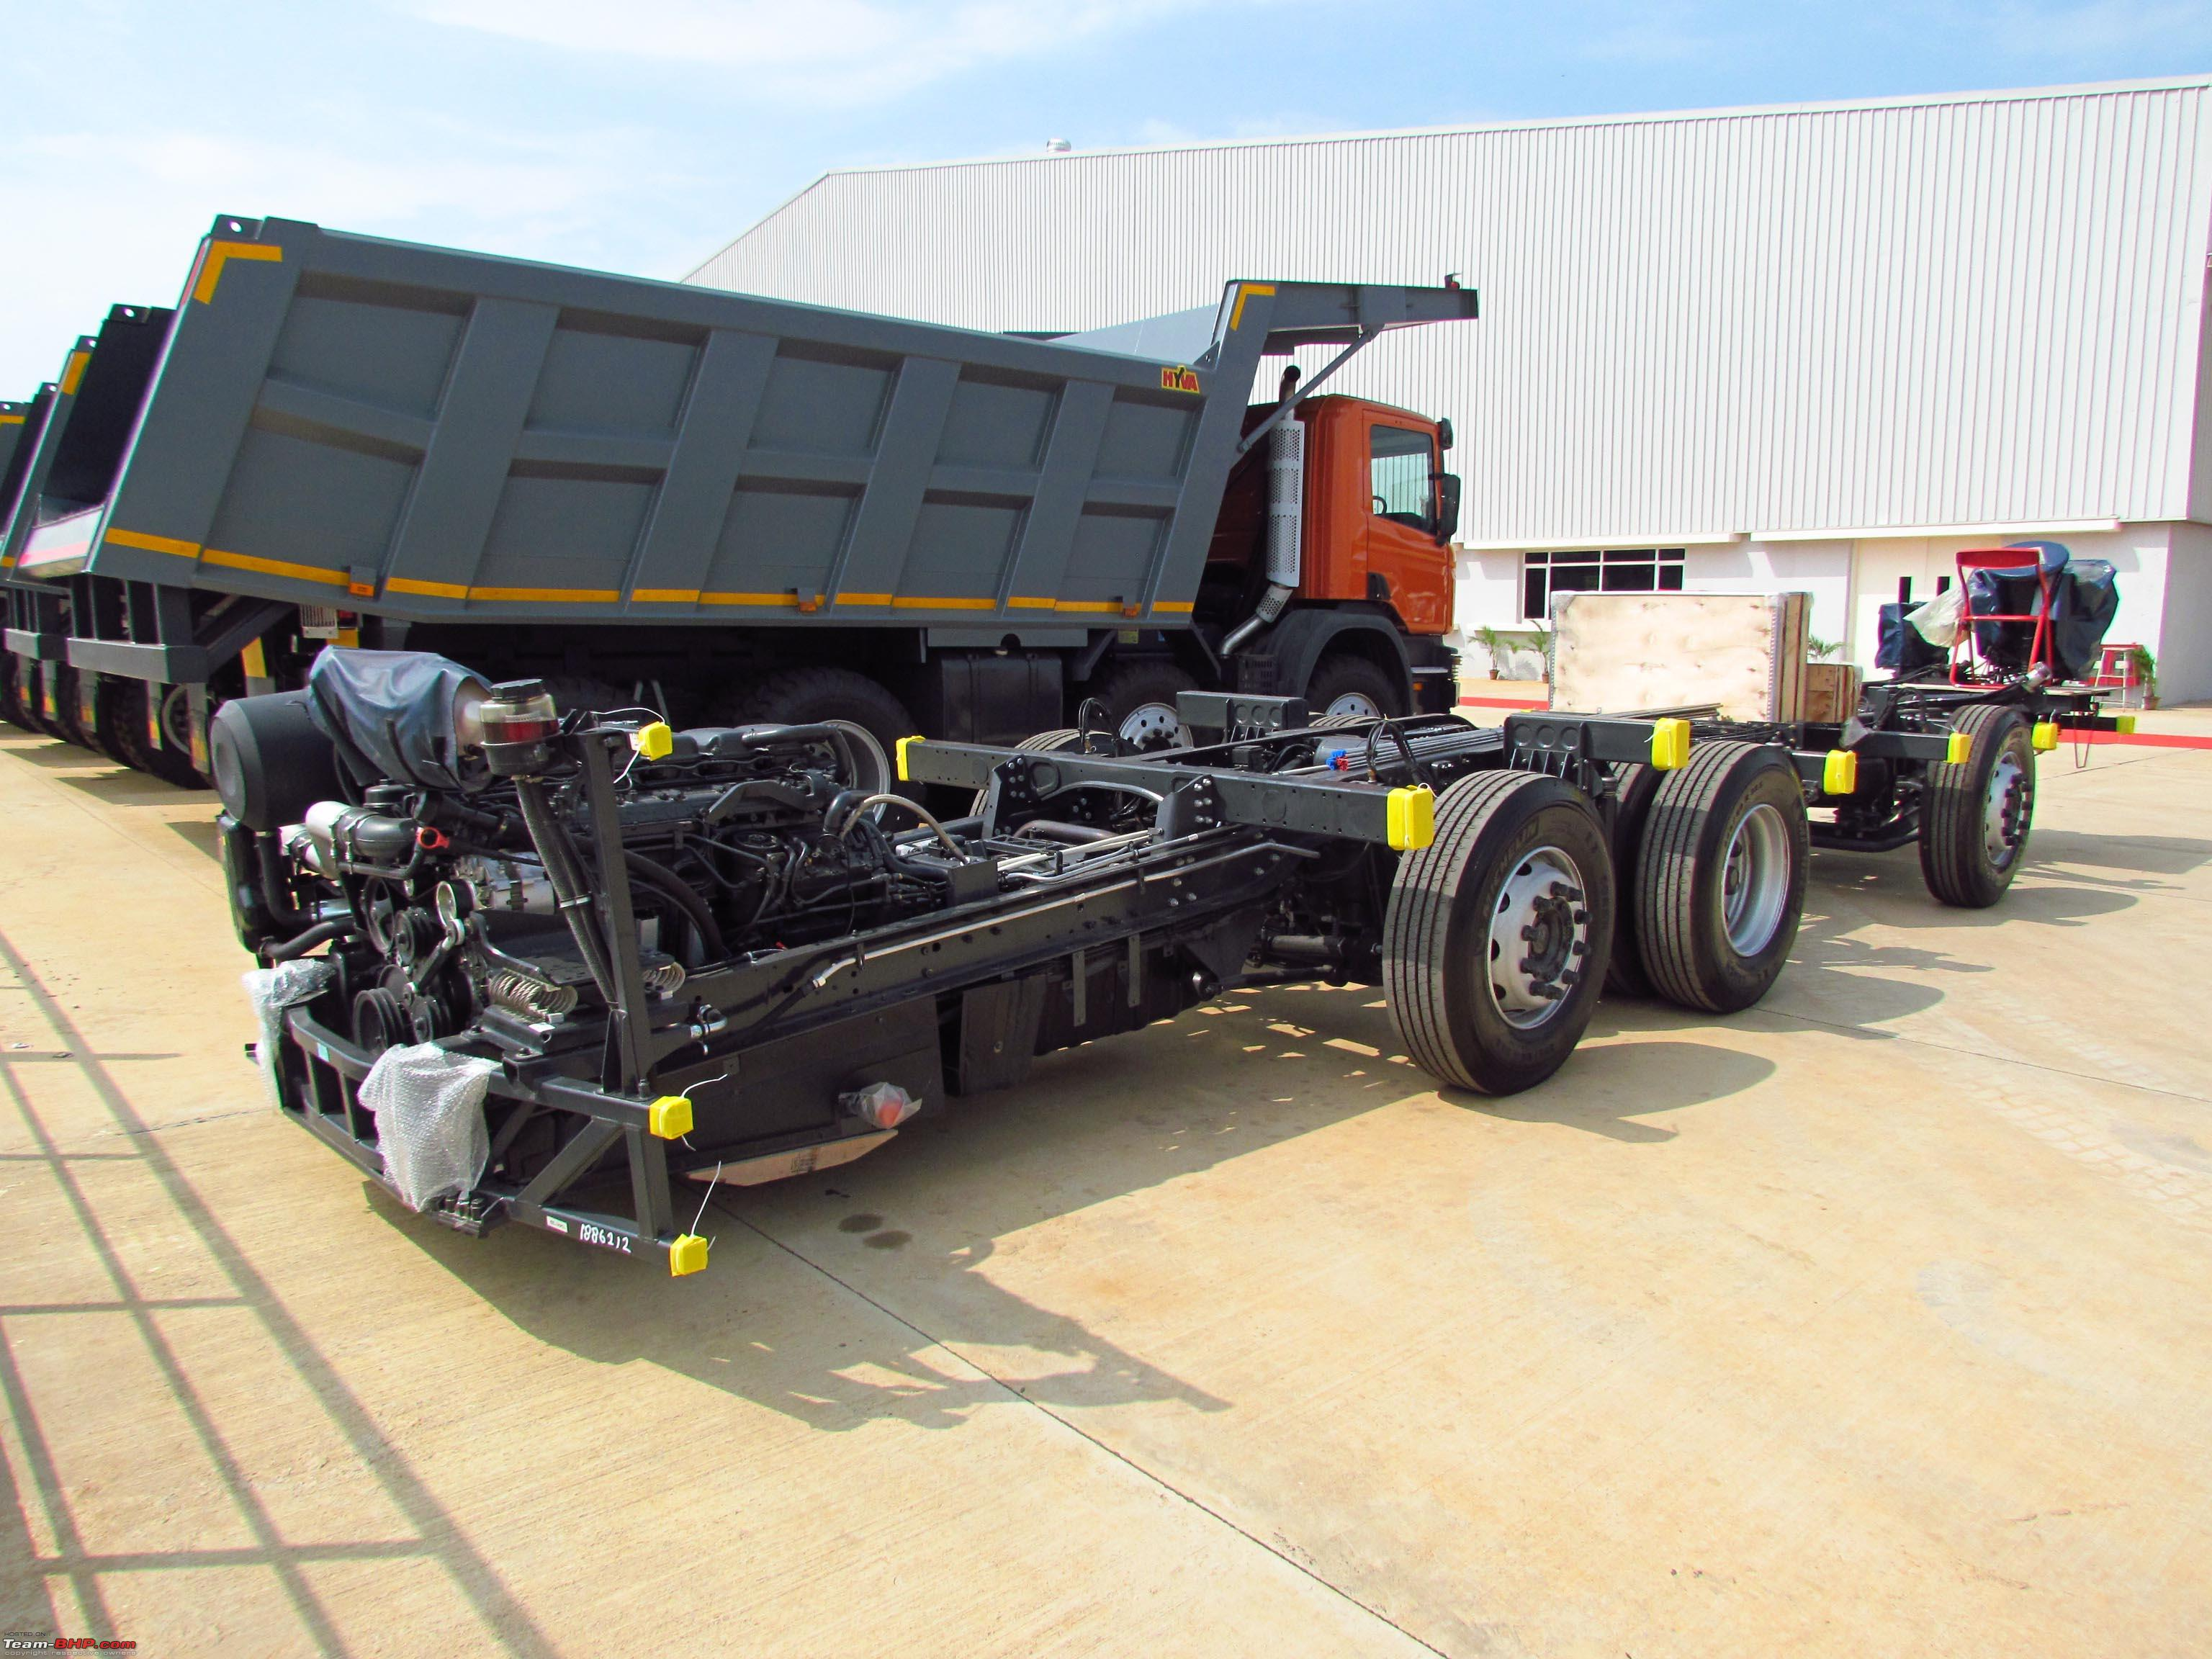 PICS: Scania multi-axle chassis - Team-BHP